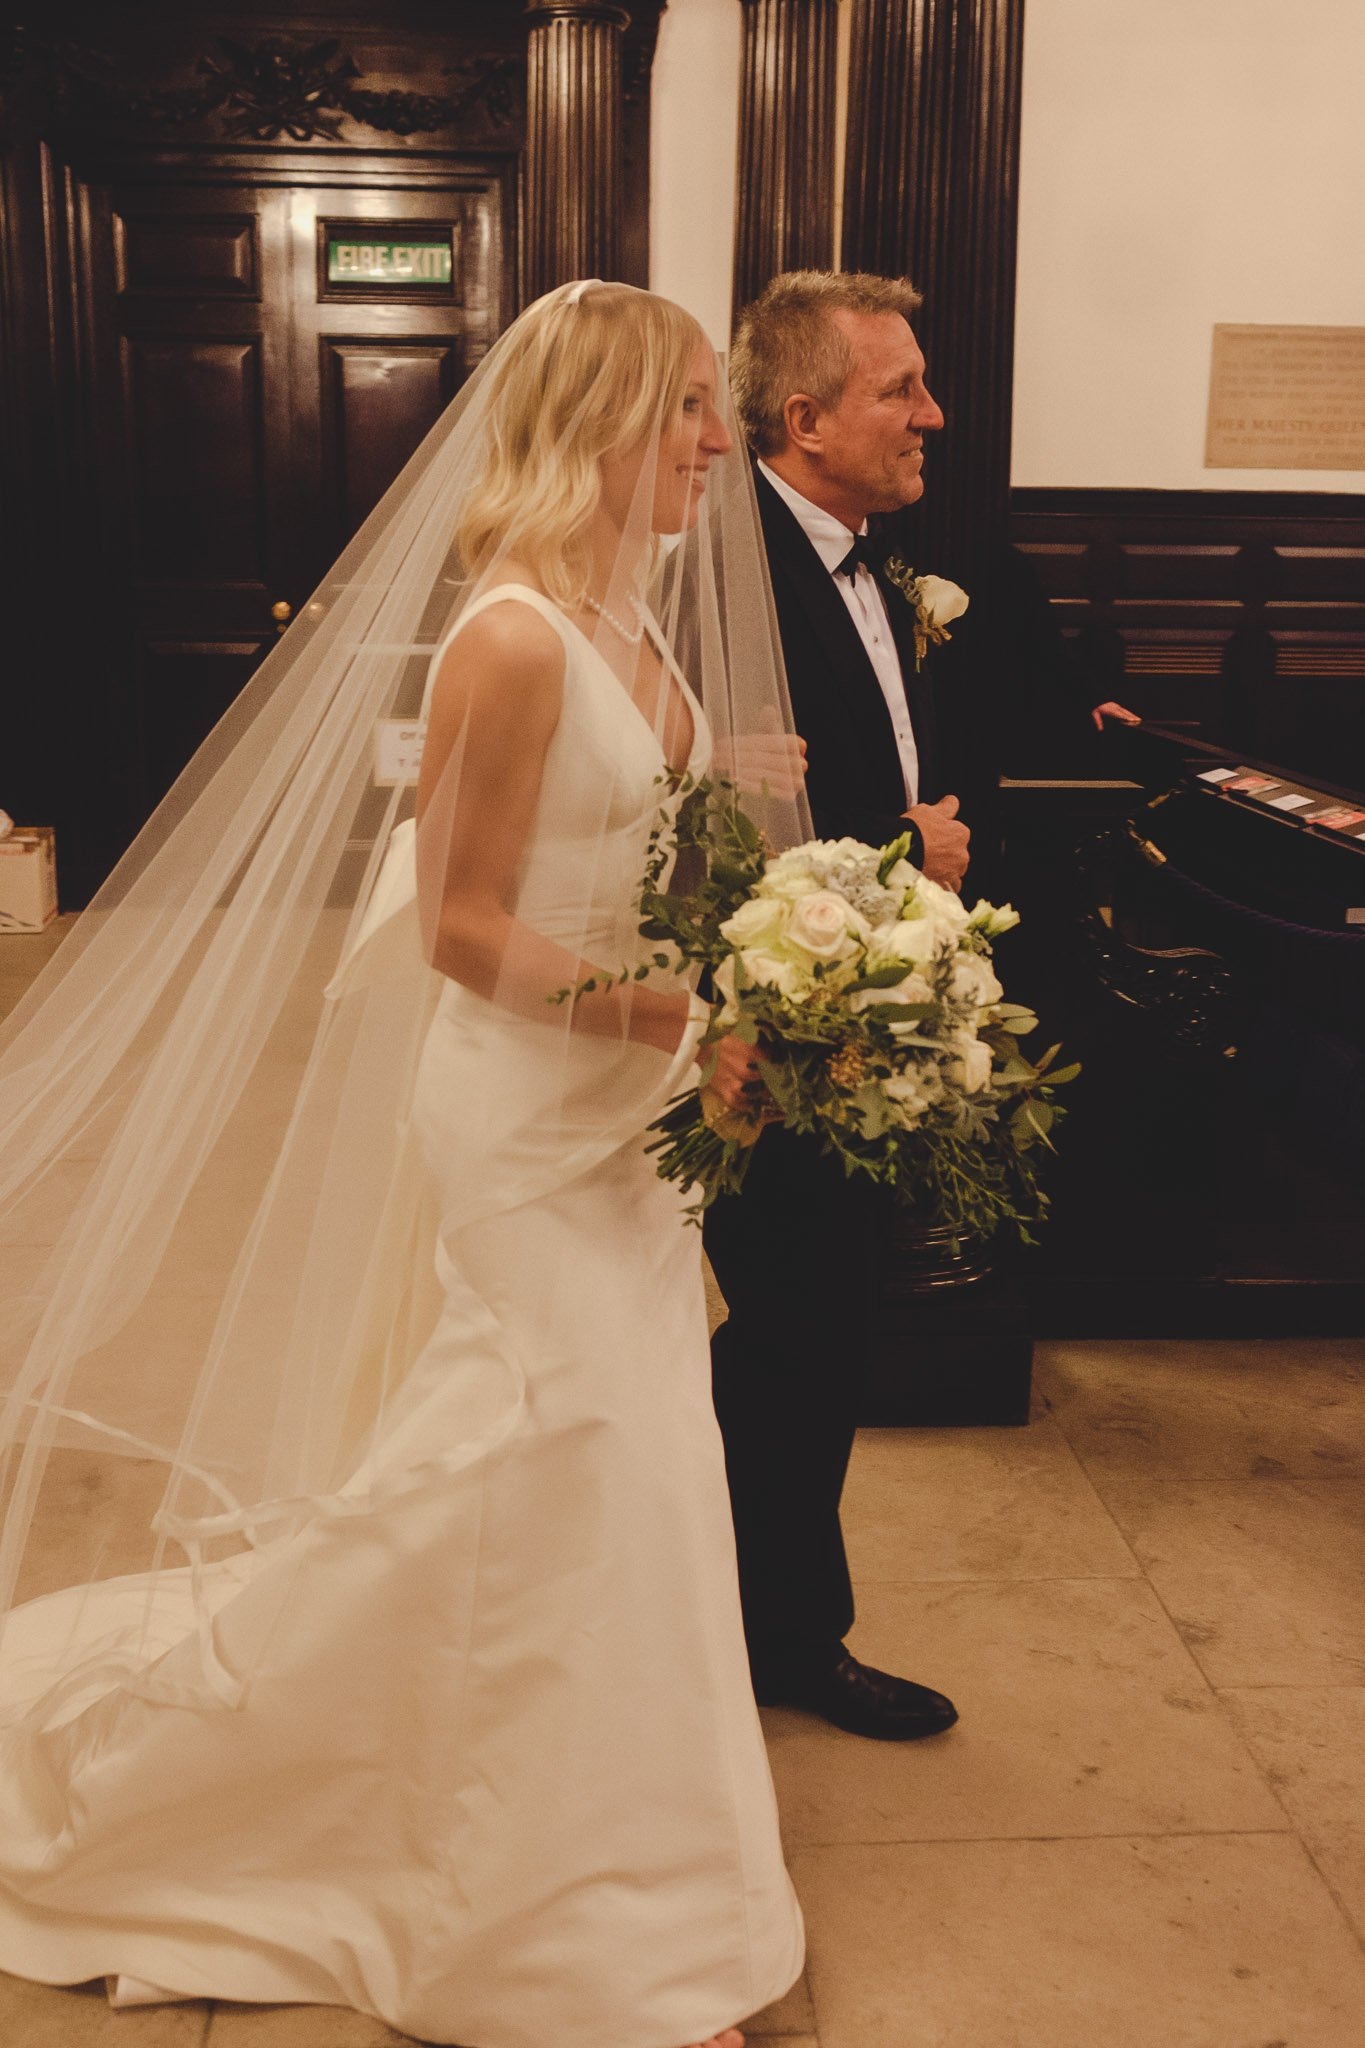 Father walking bride down the aisle at St Lawrence Jewry wedding Guildhall